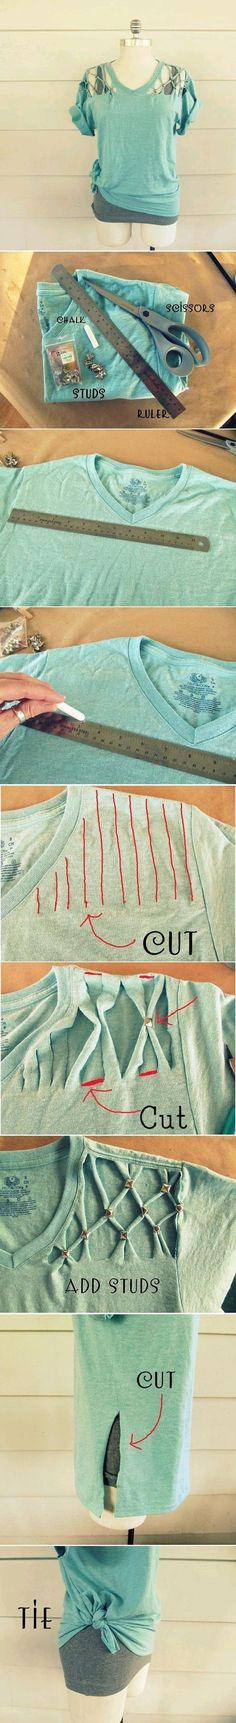 Fabulous. A great way to turn an old shirt into a new one!